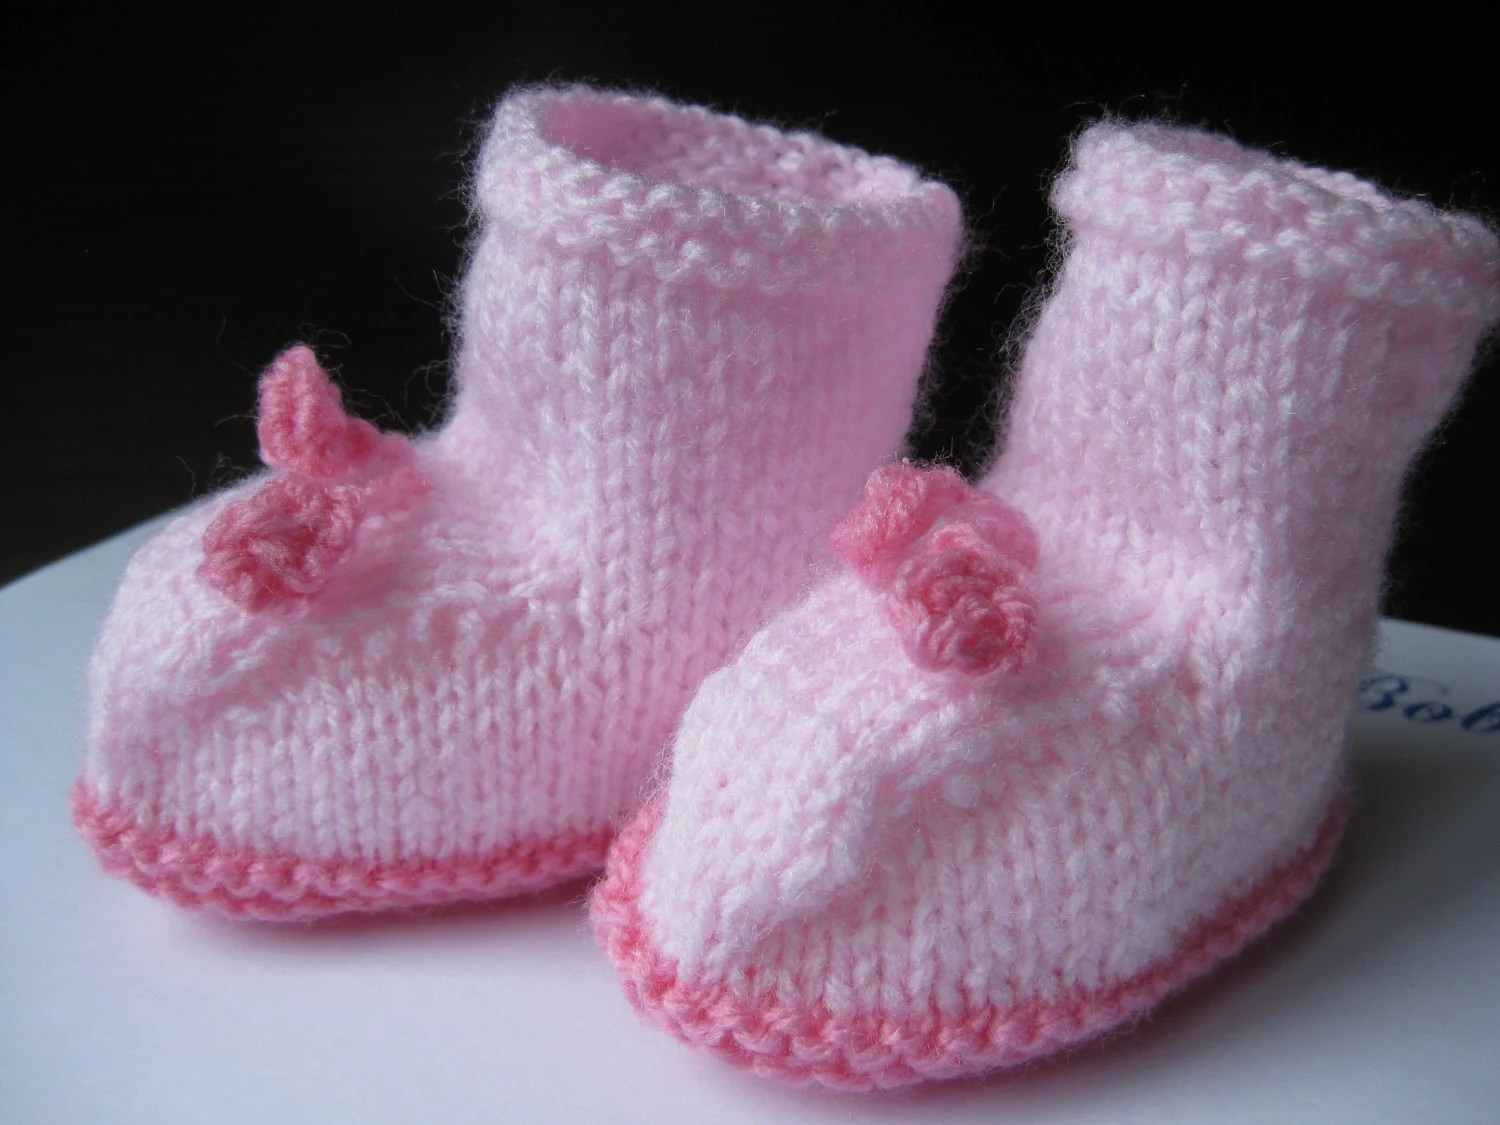 Baby Booties  knitted in Pink - Newborn to 3months